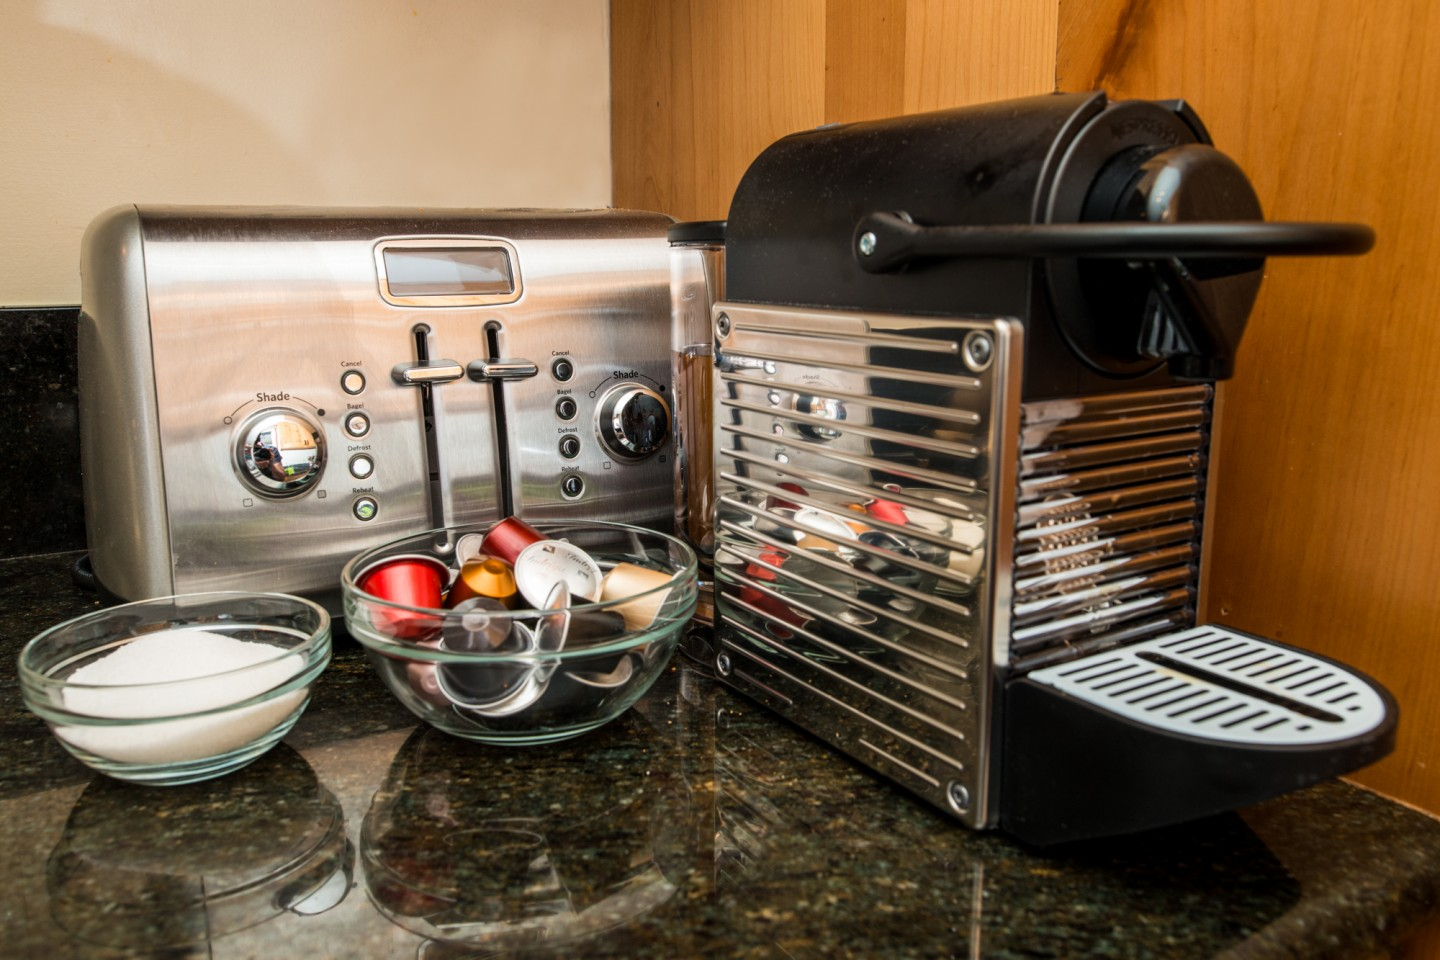 Quality bench top appliances and kitchenware